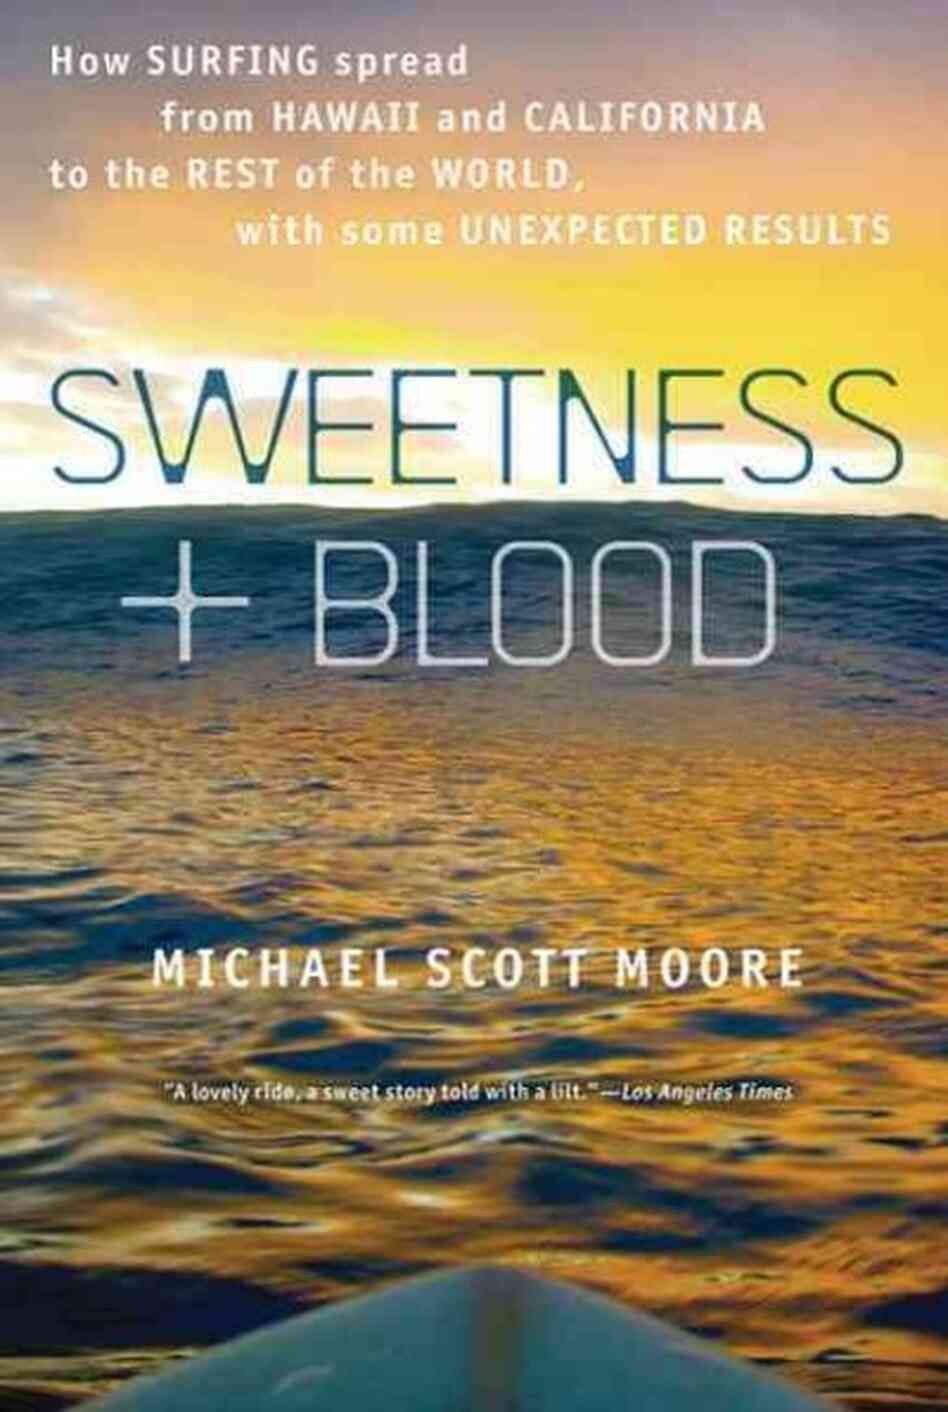 Sweetness and Blood